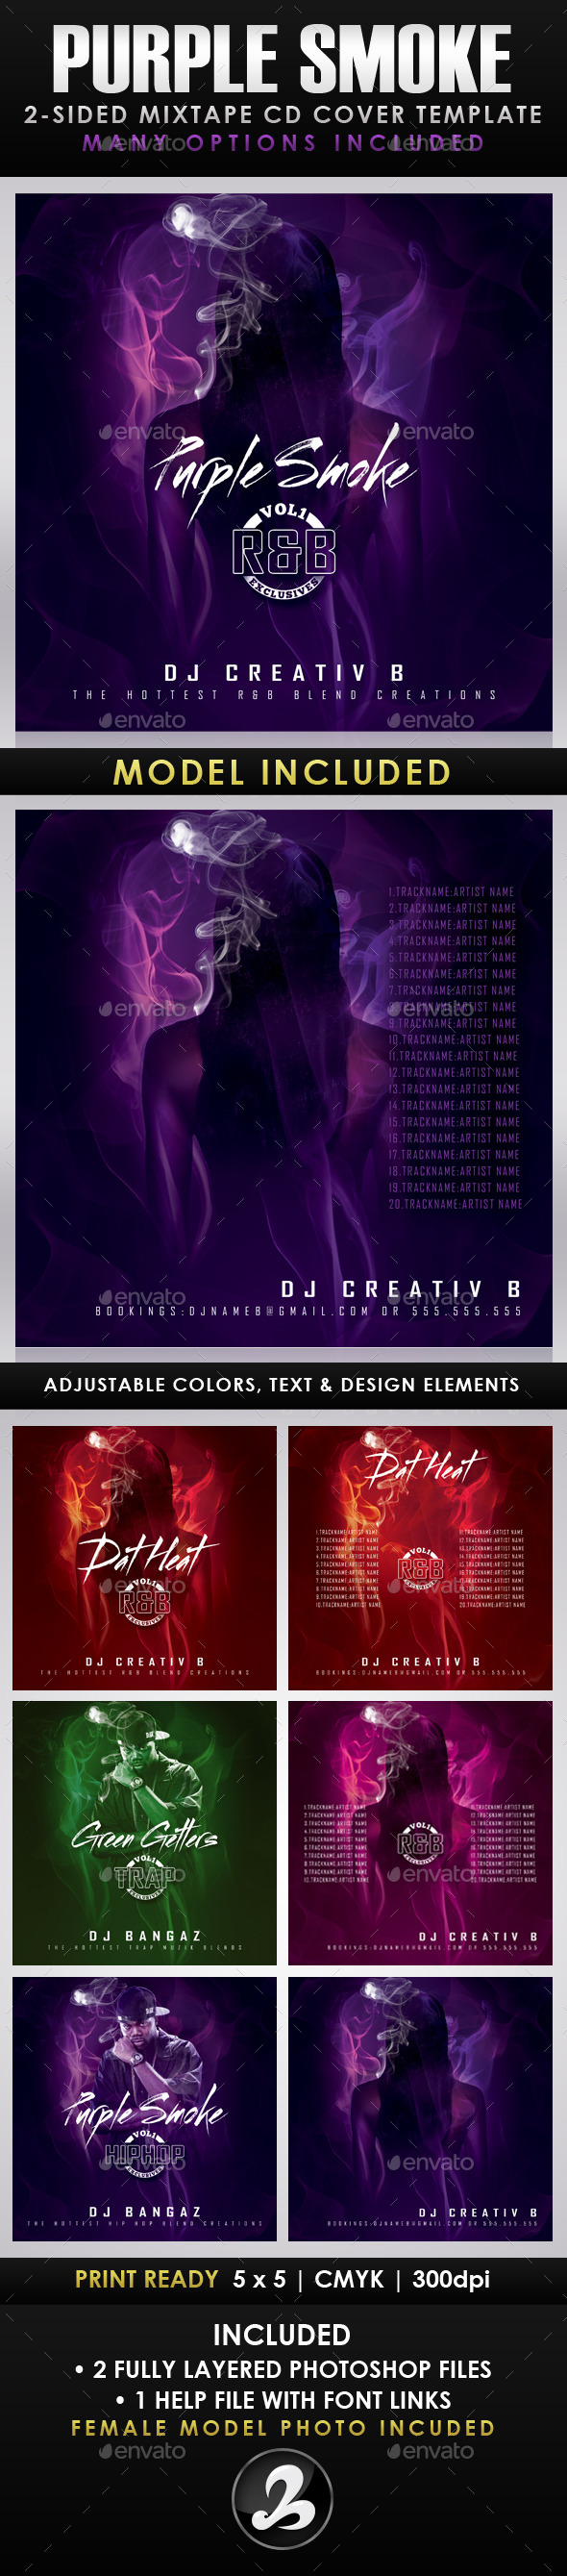 Purple Smoke Mixtape CD Cover Templates - CD & DVD Artwork Print Templates